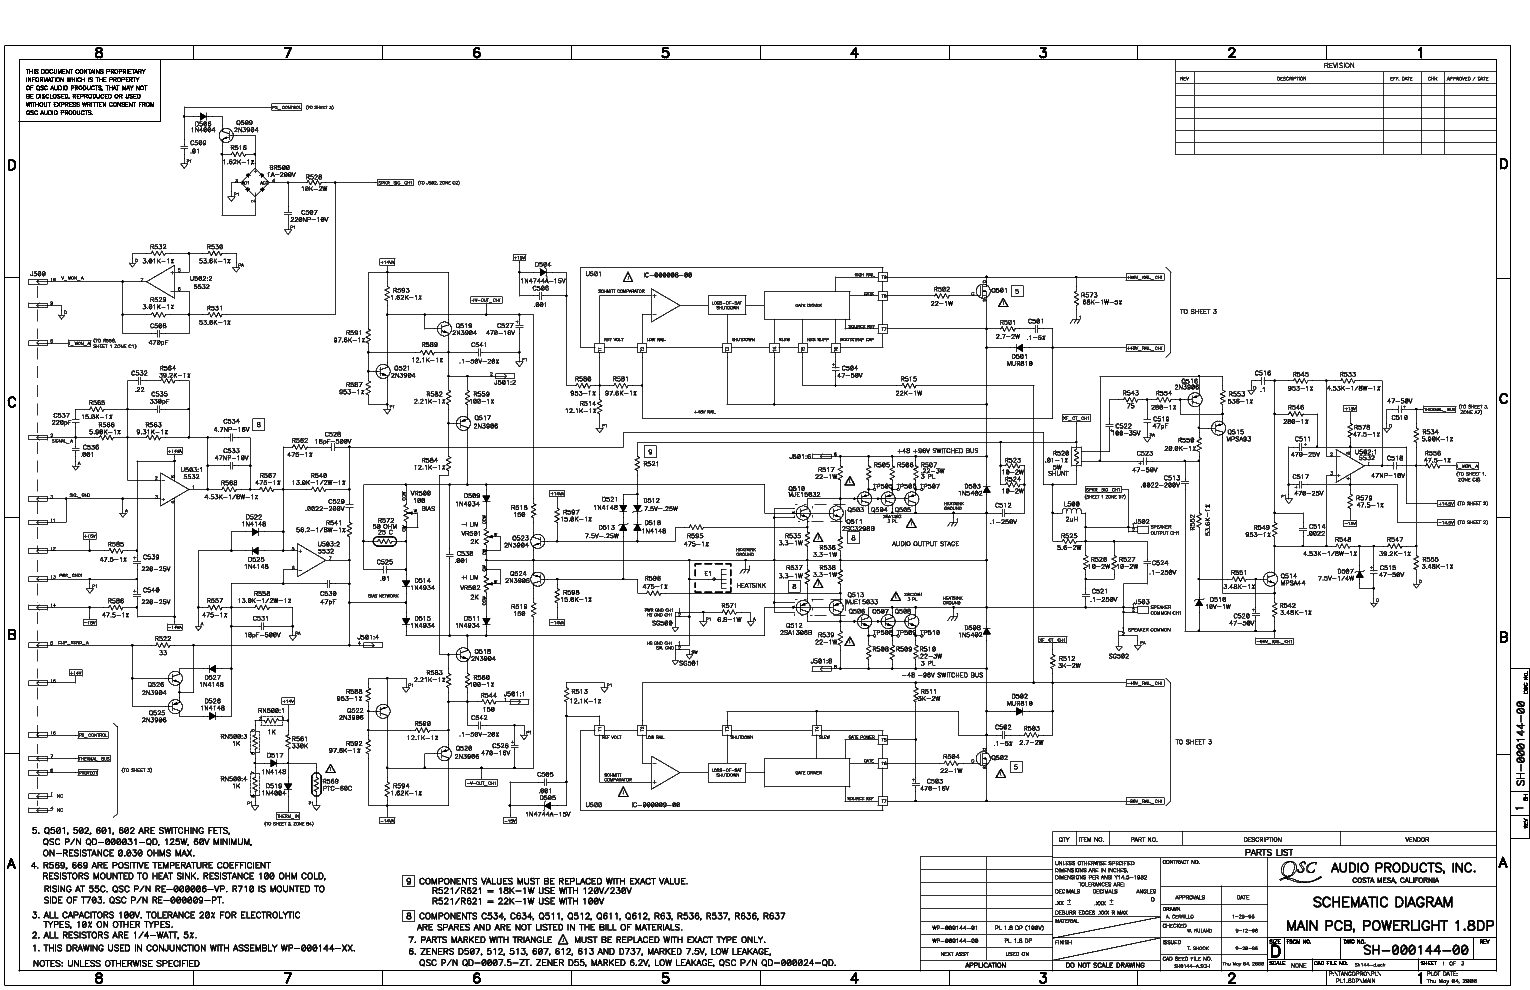 qsc_pl18.pdf_1 Qsc Plx Schematic Diagram on isa 300ti, pl340 power supply, gx 3 amplifier, k-12 ksub, 1400 power amp, k10 speaker, usa 900 amplifier,